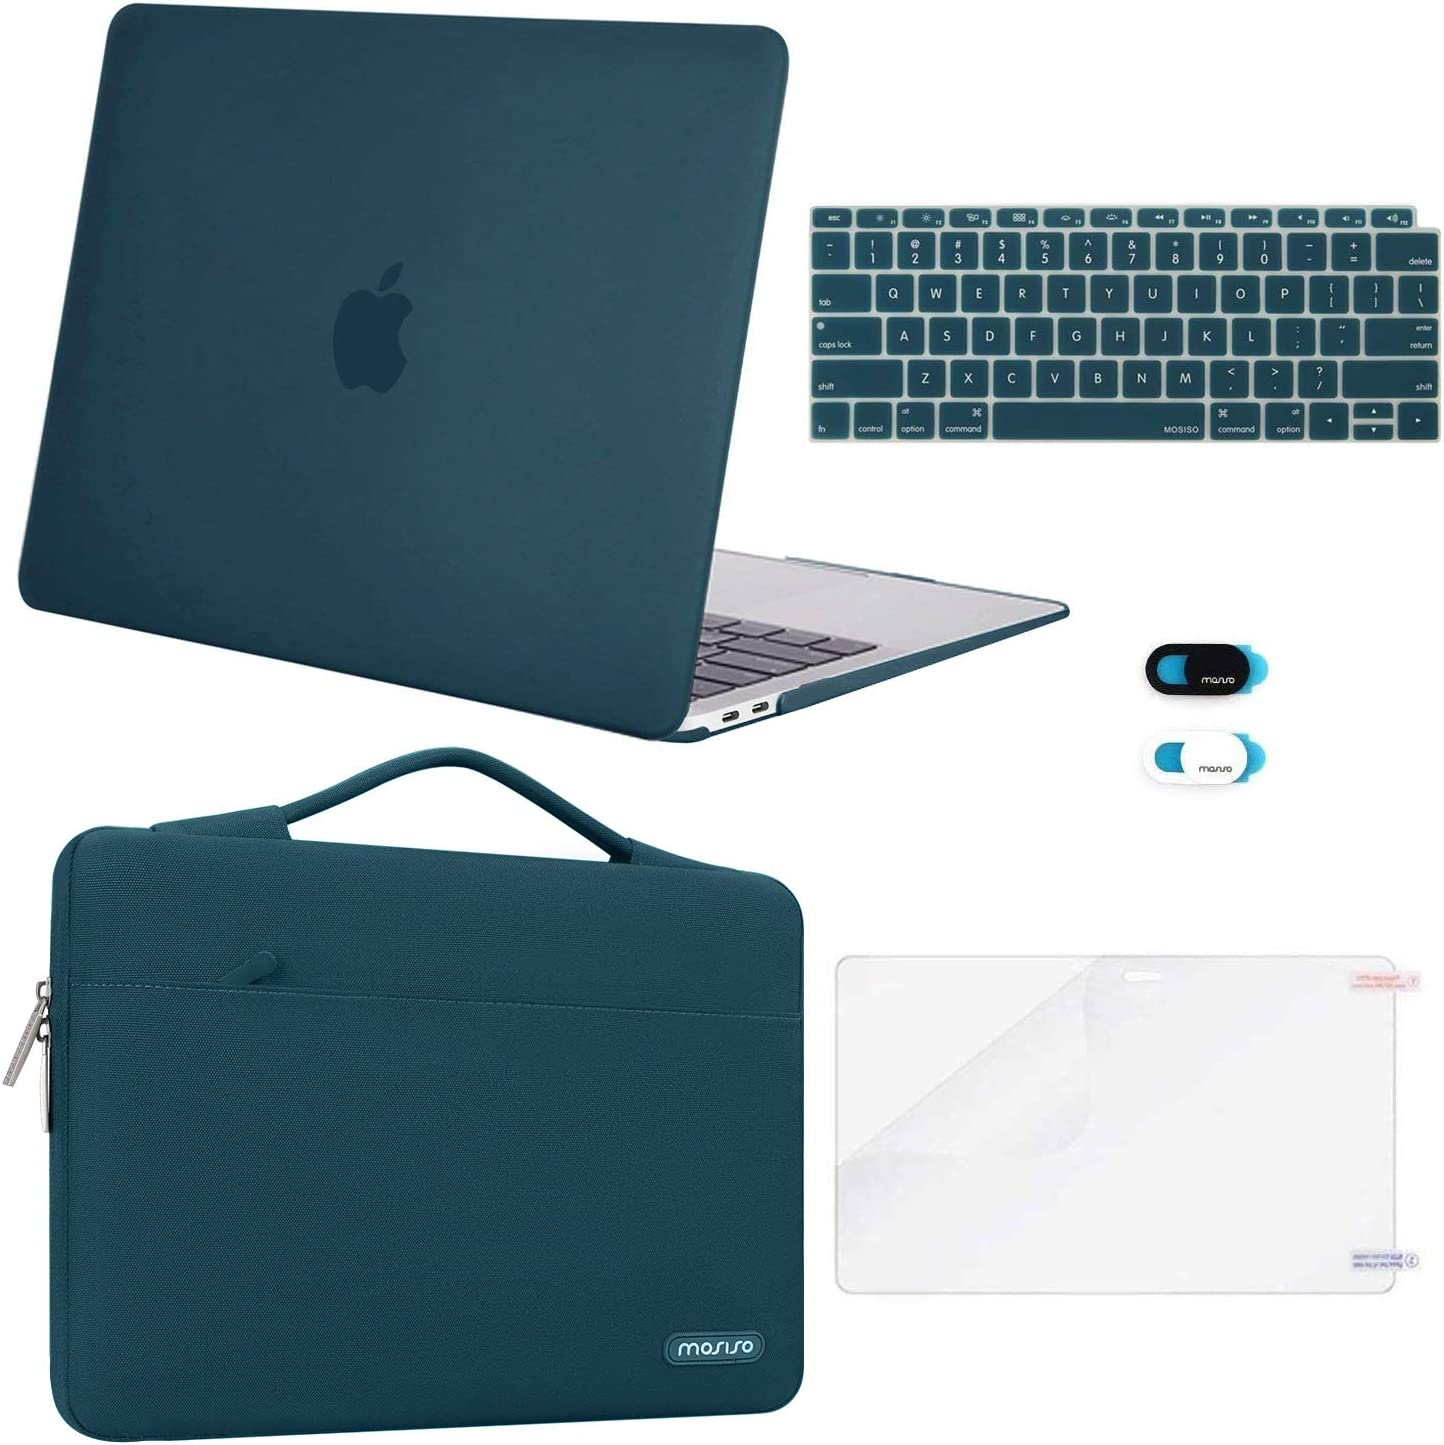 MOSISO MacBook Air 13 inch Case 2020 2019 2018 Release A2179 A1932 Plastic Hard Shell/&Sleeve Bag/&Keyboard Cover/&Webcam Cover/&Screen Protector Compatible with MacBook Air 13 inch Retina,Midnight Green